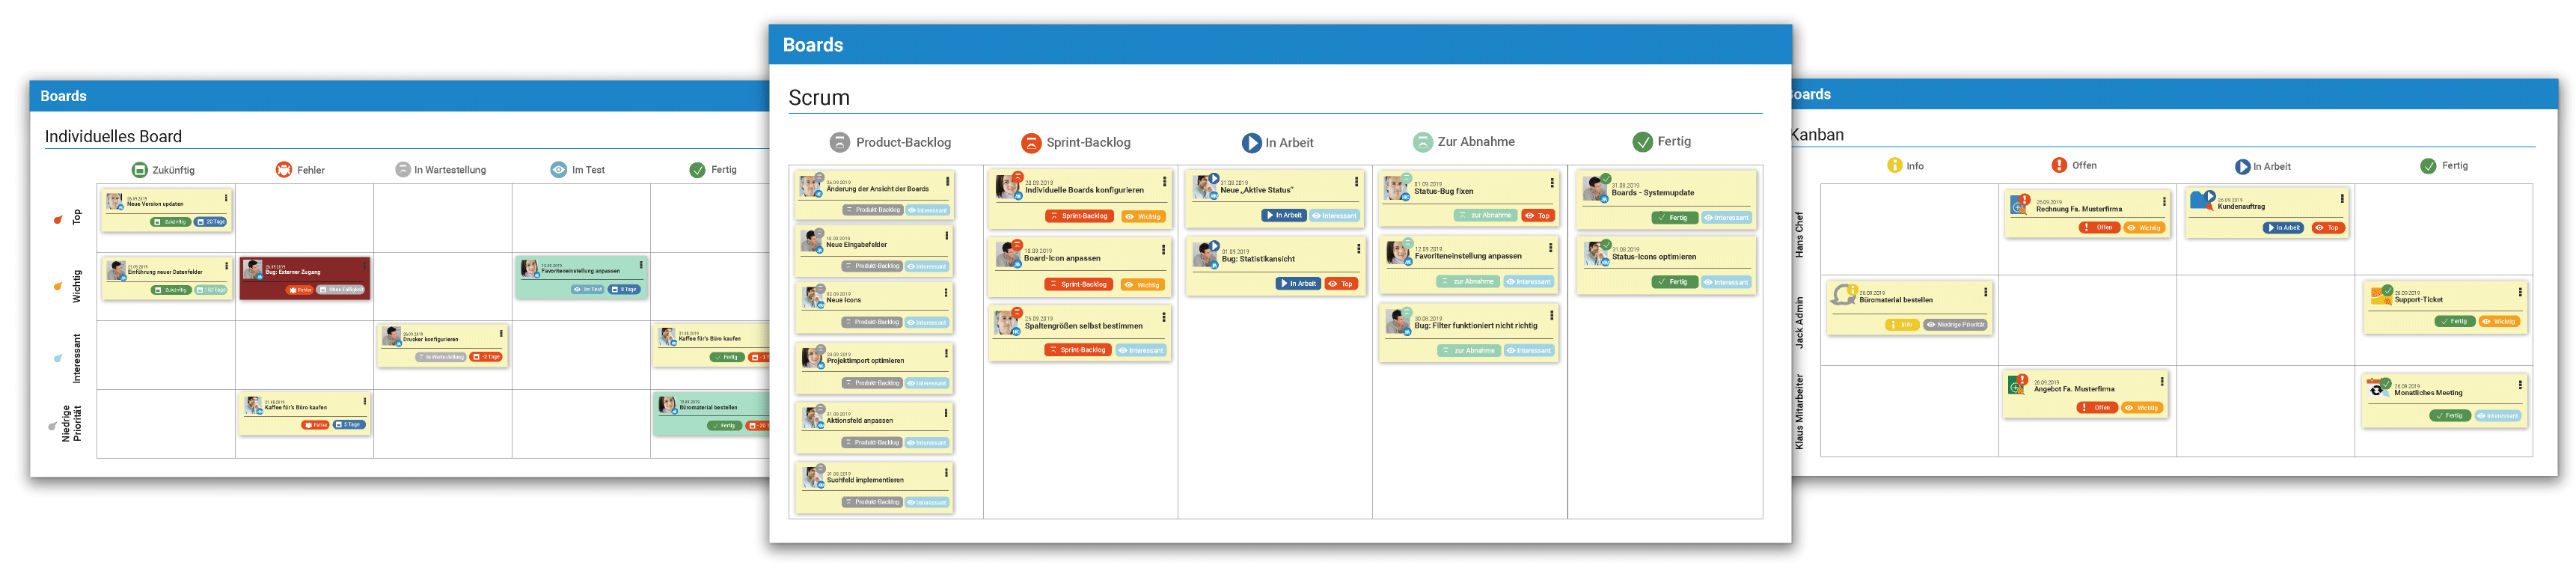 Boards in projectfacts